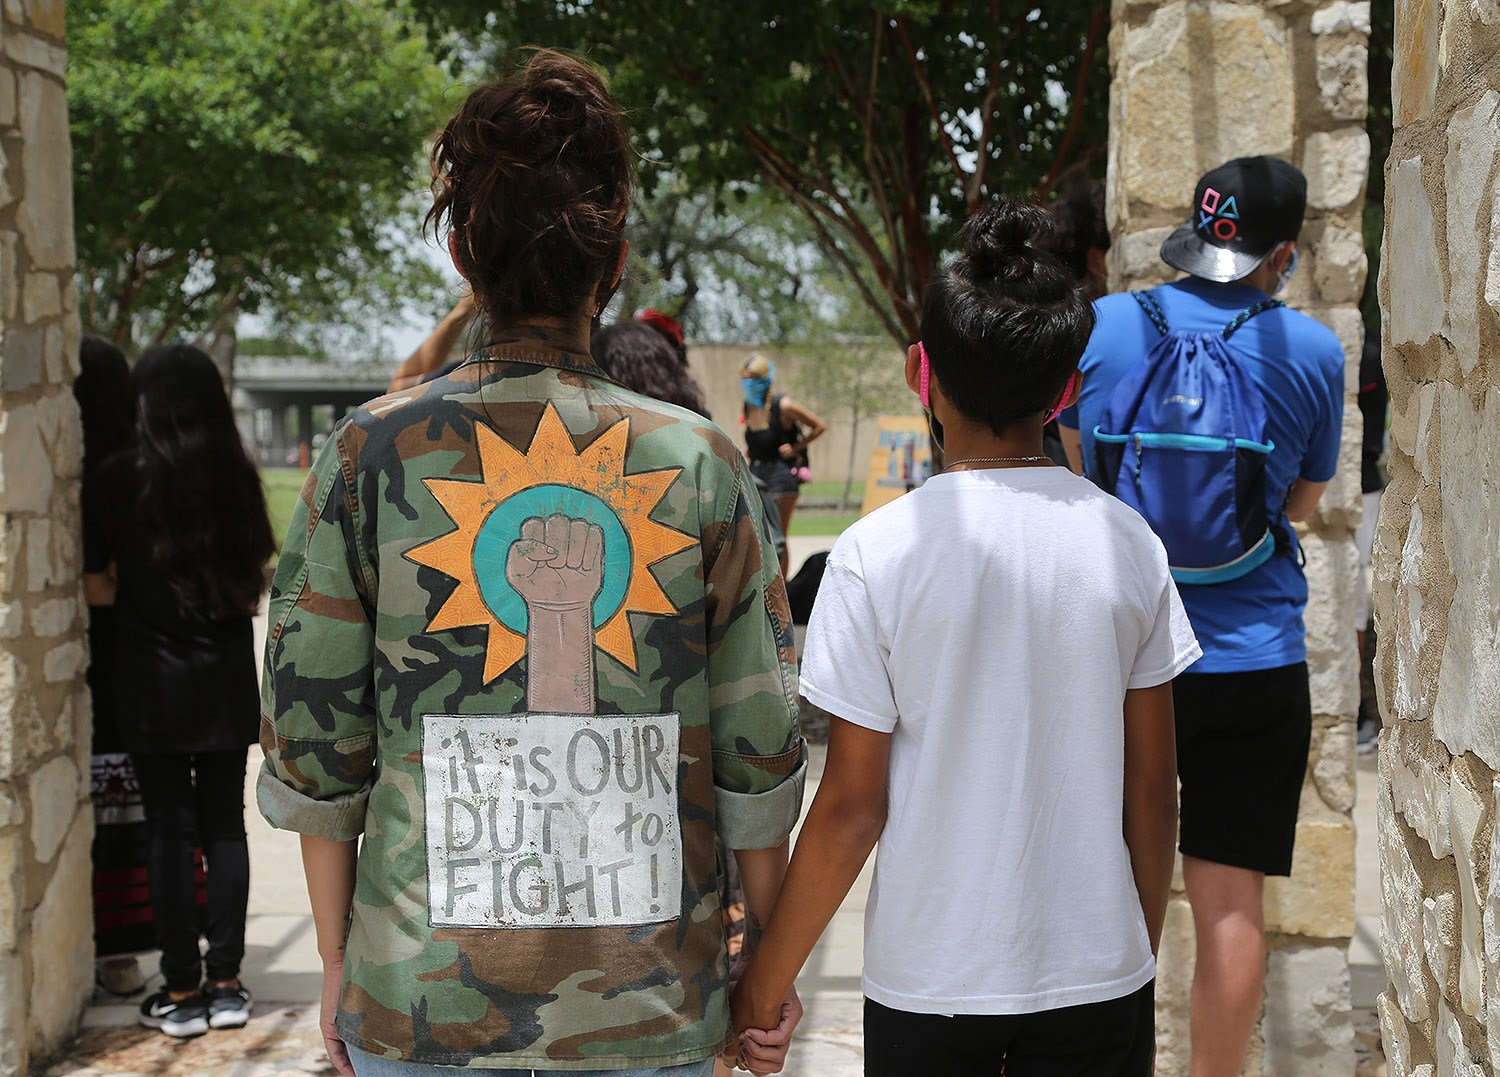 Advocates for the removal of the Christopher Columbus statue protest Saturday, June 27, 2020, at Columbus Park, 200 Columbus St. Photo by Ben Olivo | Heron